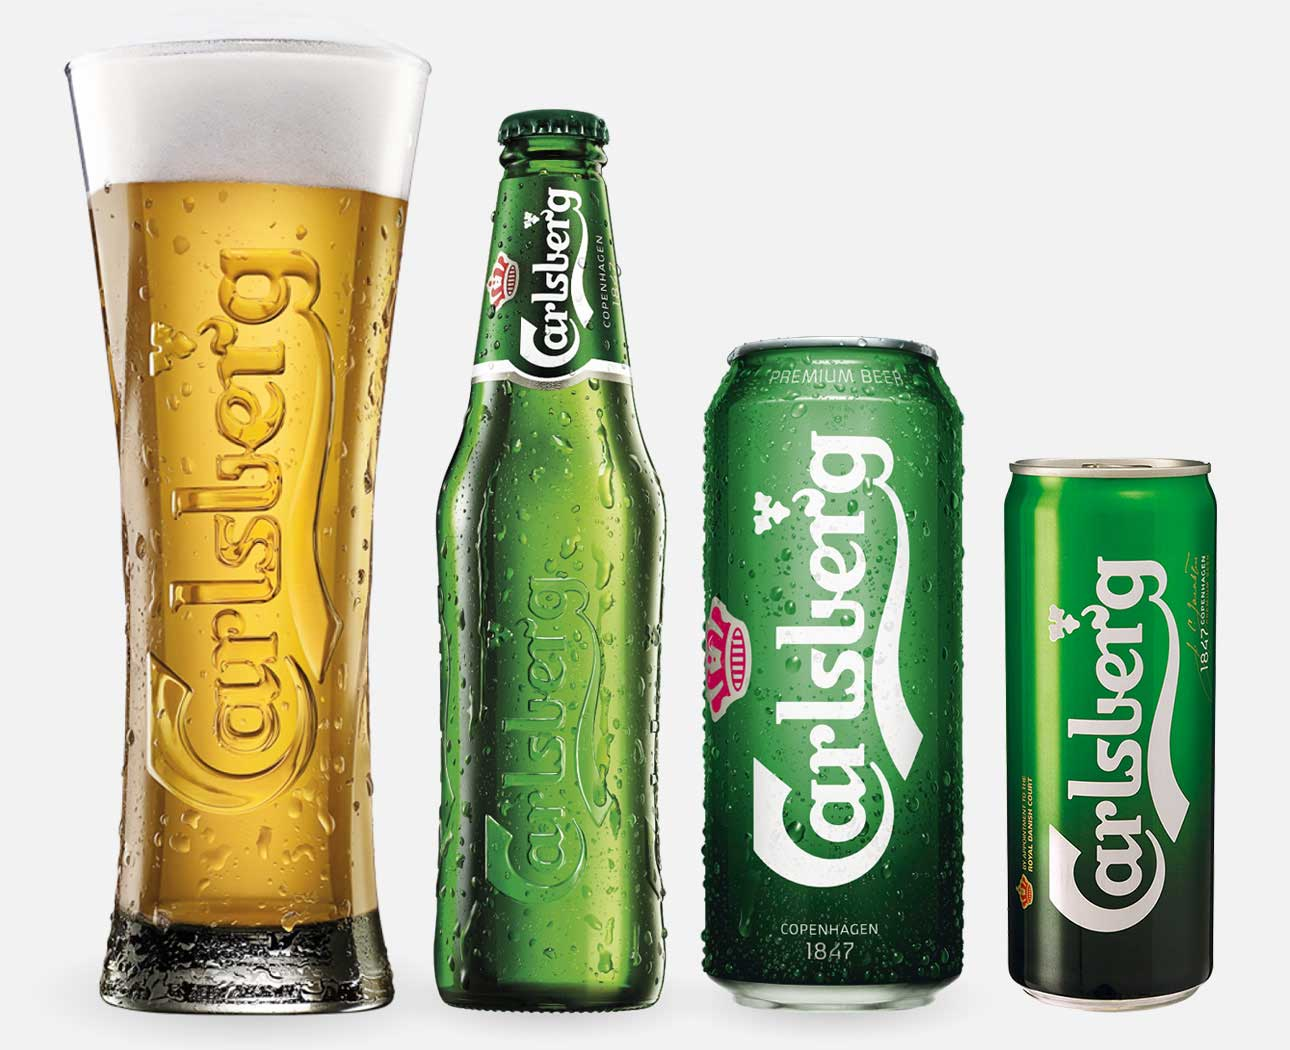 Carlsberg's containers